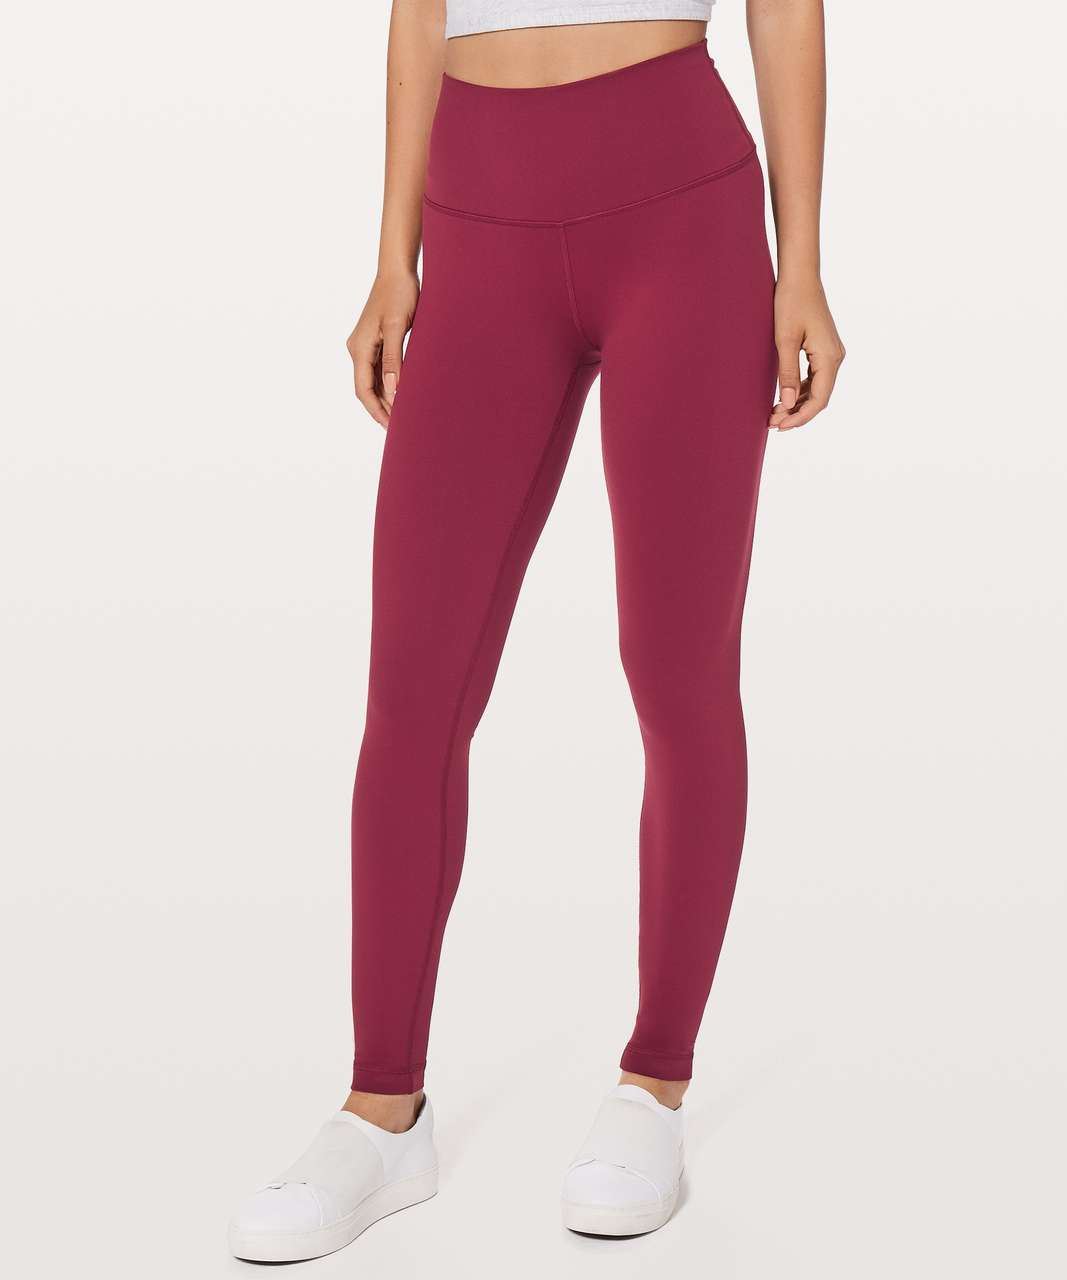 "Lululemon Wunder Under Hi-Rise Tight 28"" - Ruby Wine"